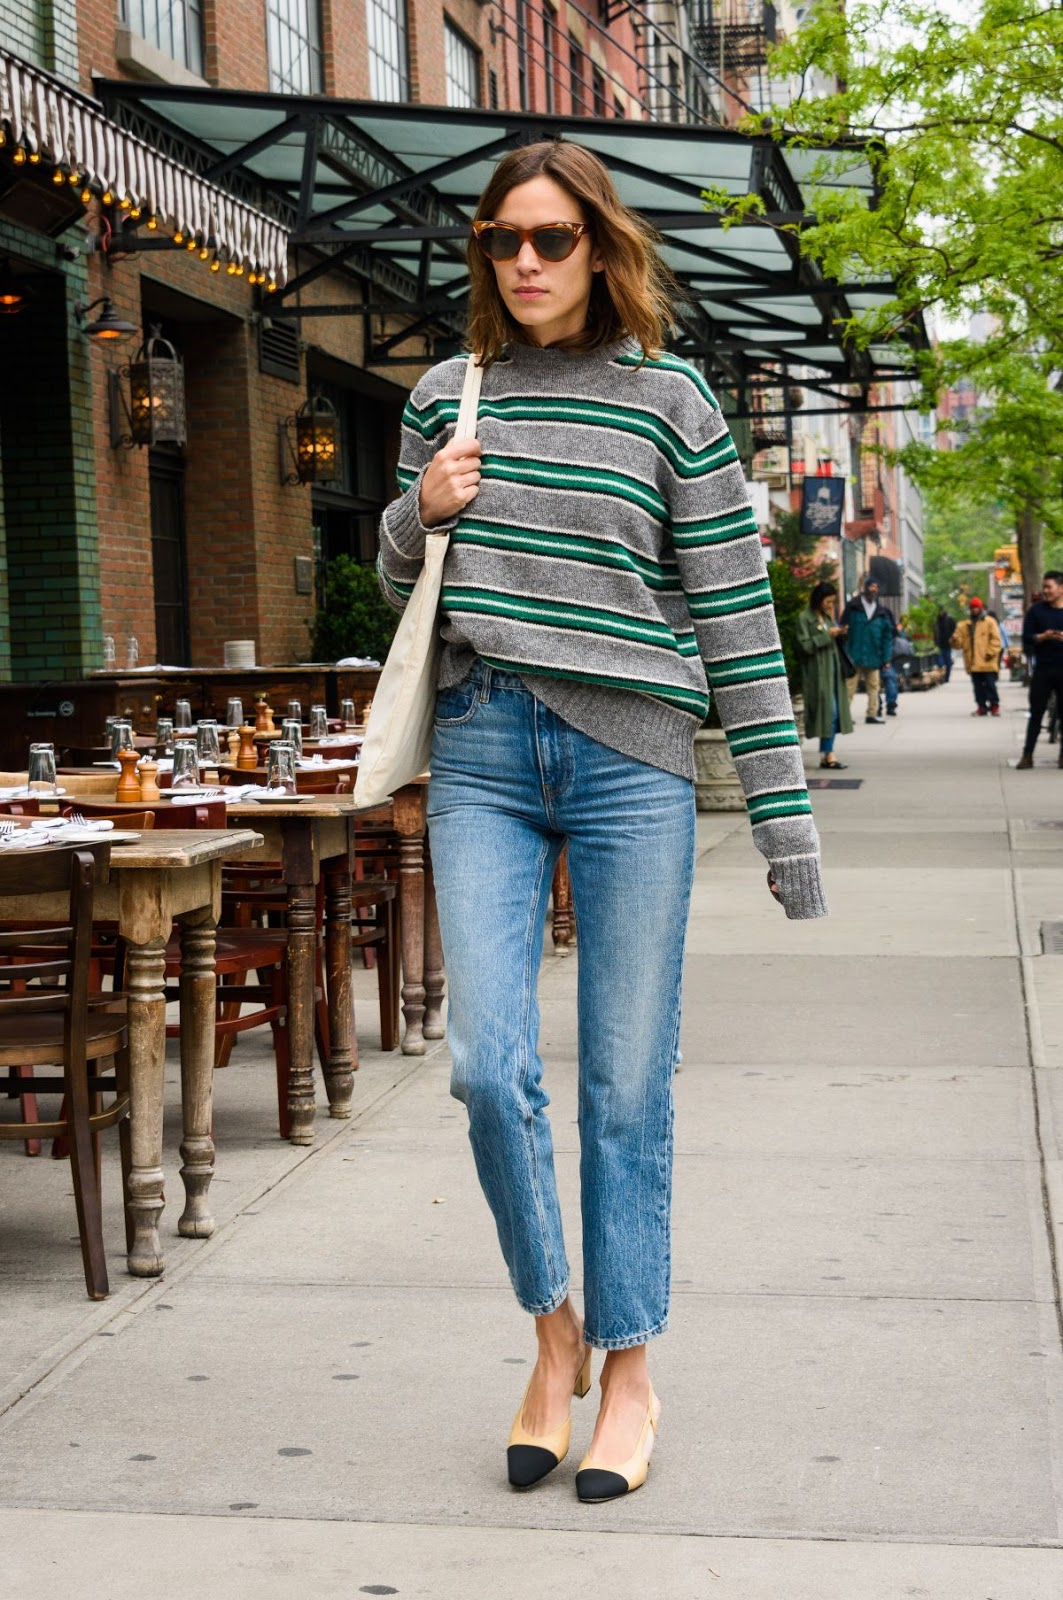 How To Wear A Striped Sweater – Alexa Chung Style